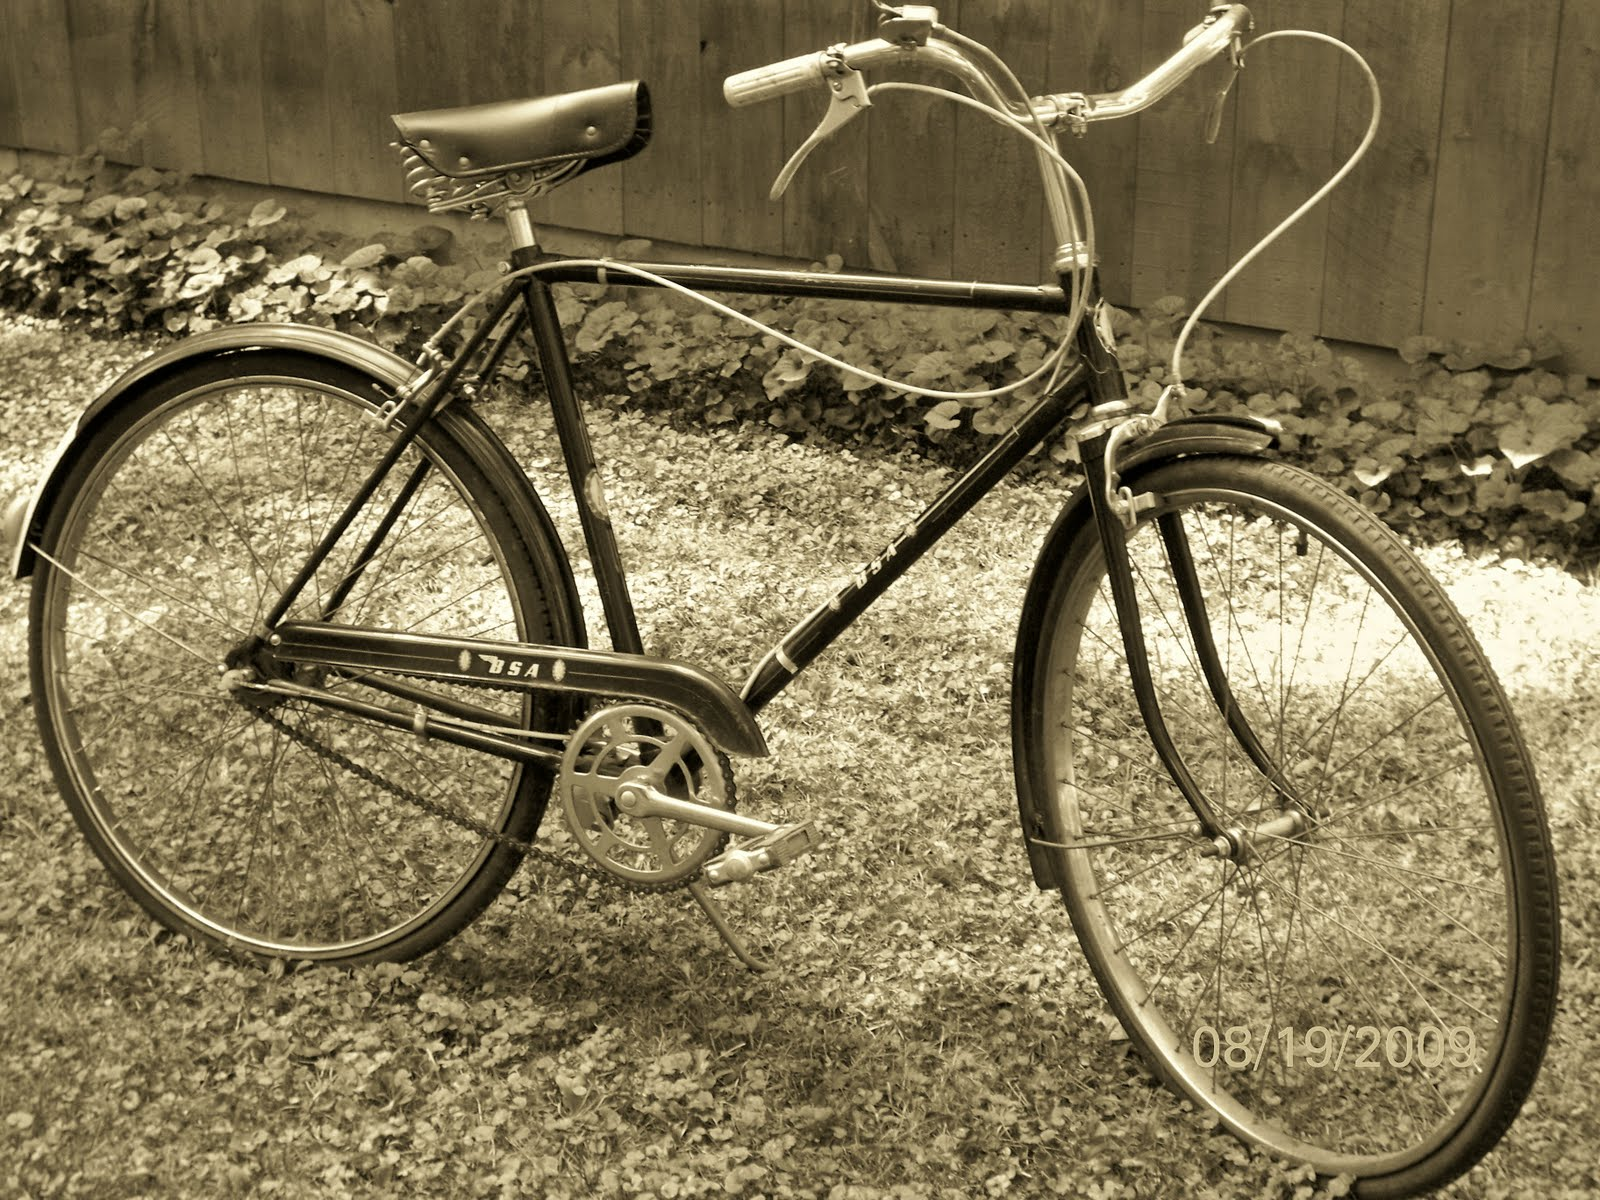 Bonnie S Store Bsa Bicycle